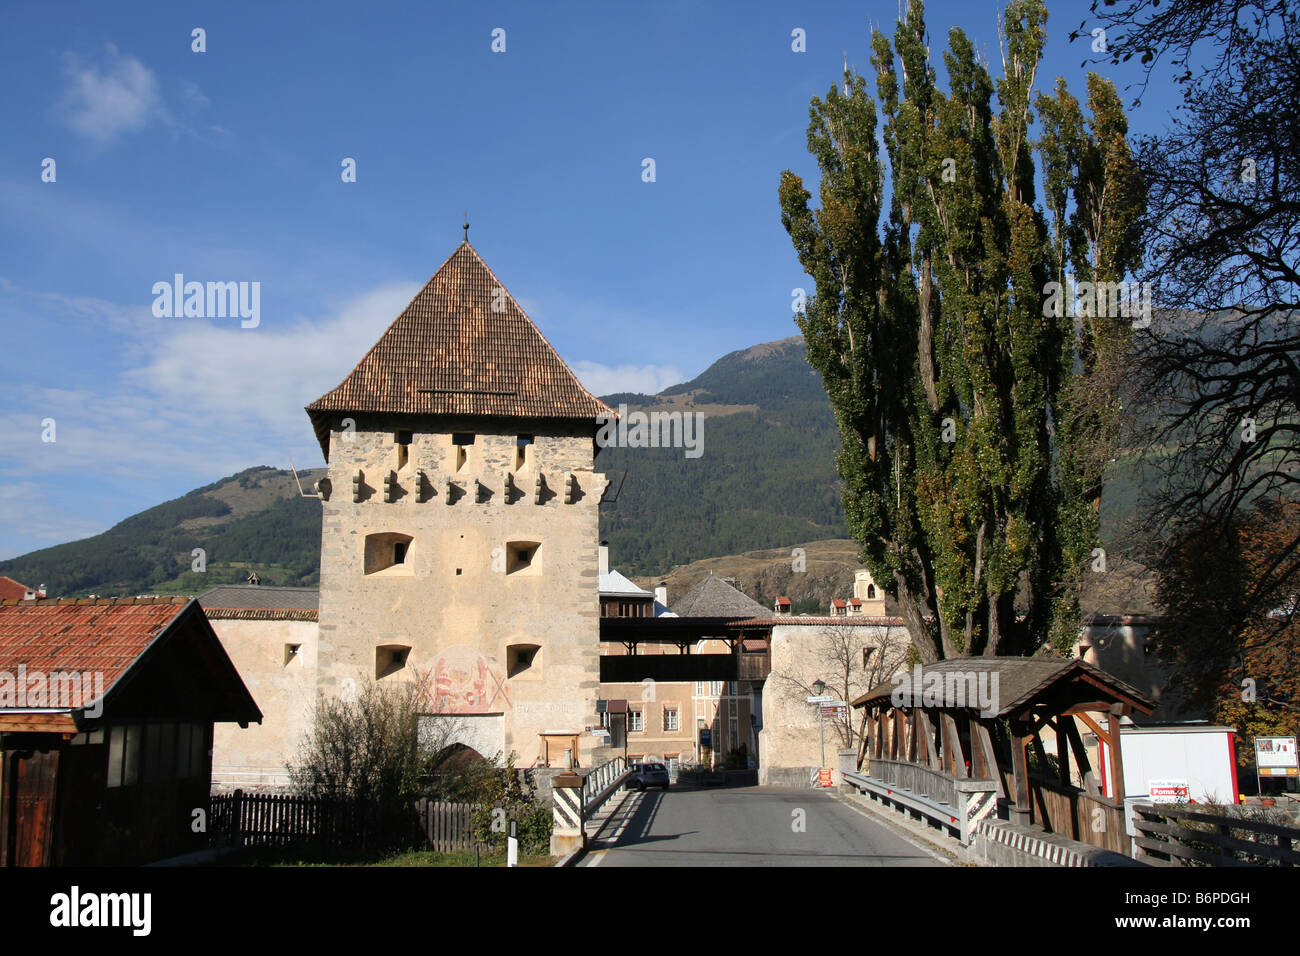 watch tower and covered bridge at the medieval town of Glorenza Glorenz in Italy Val Venosta Vinschgau - Stock Image